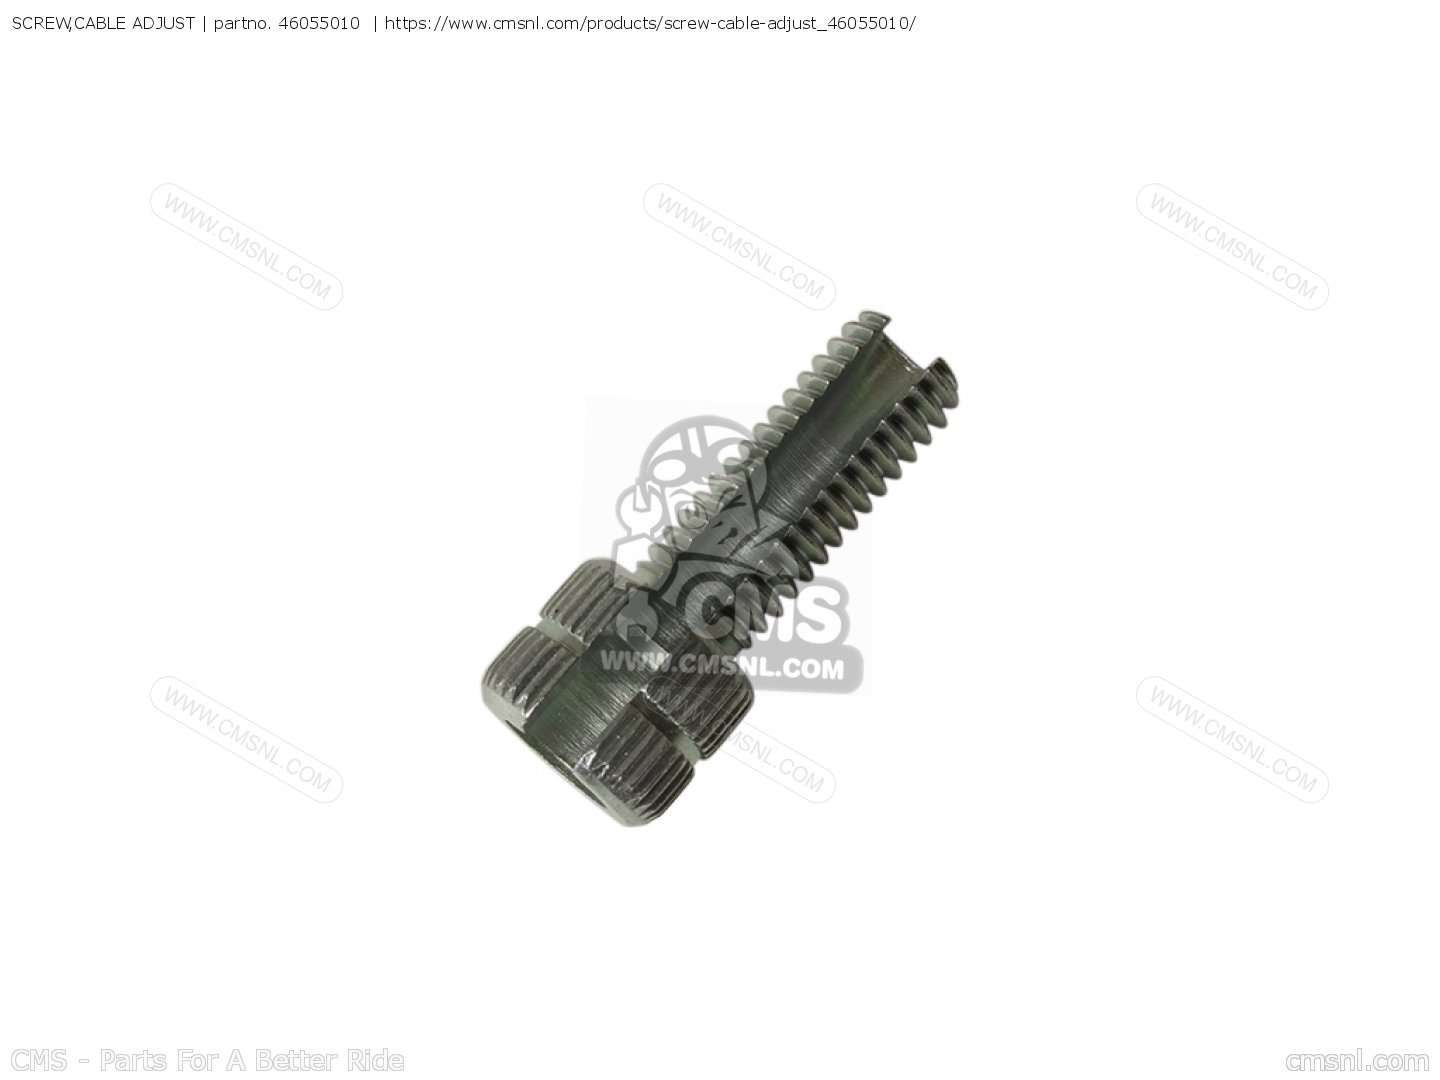 Screw Cable Adjust For G3tr Bushmaster Usa